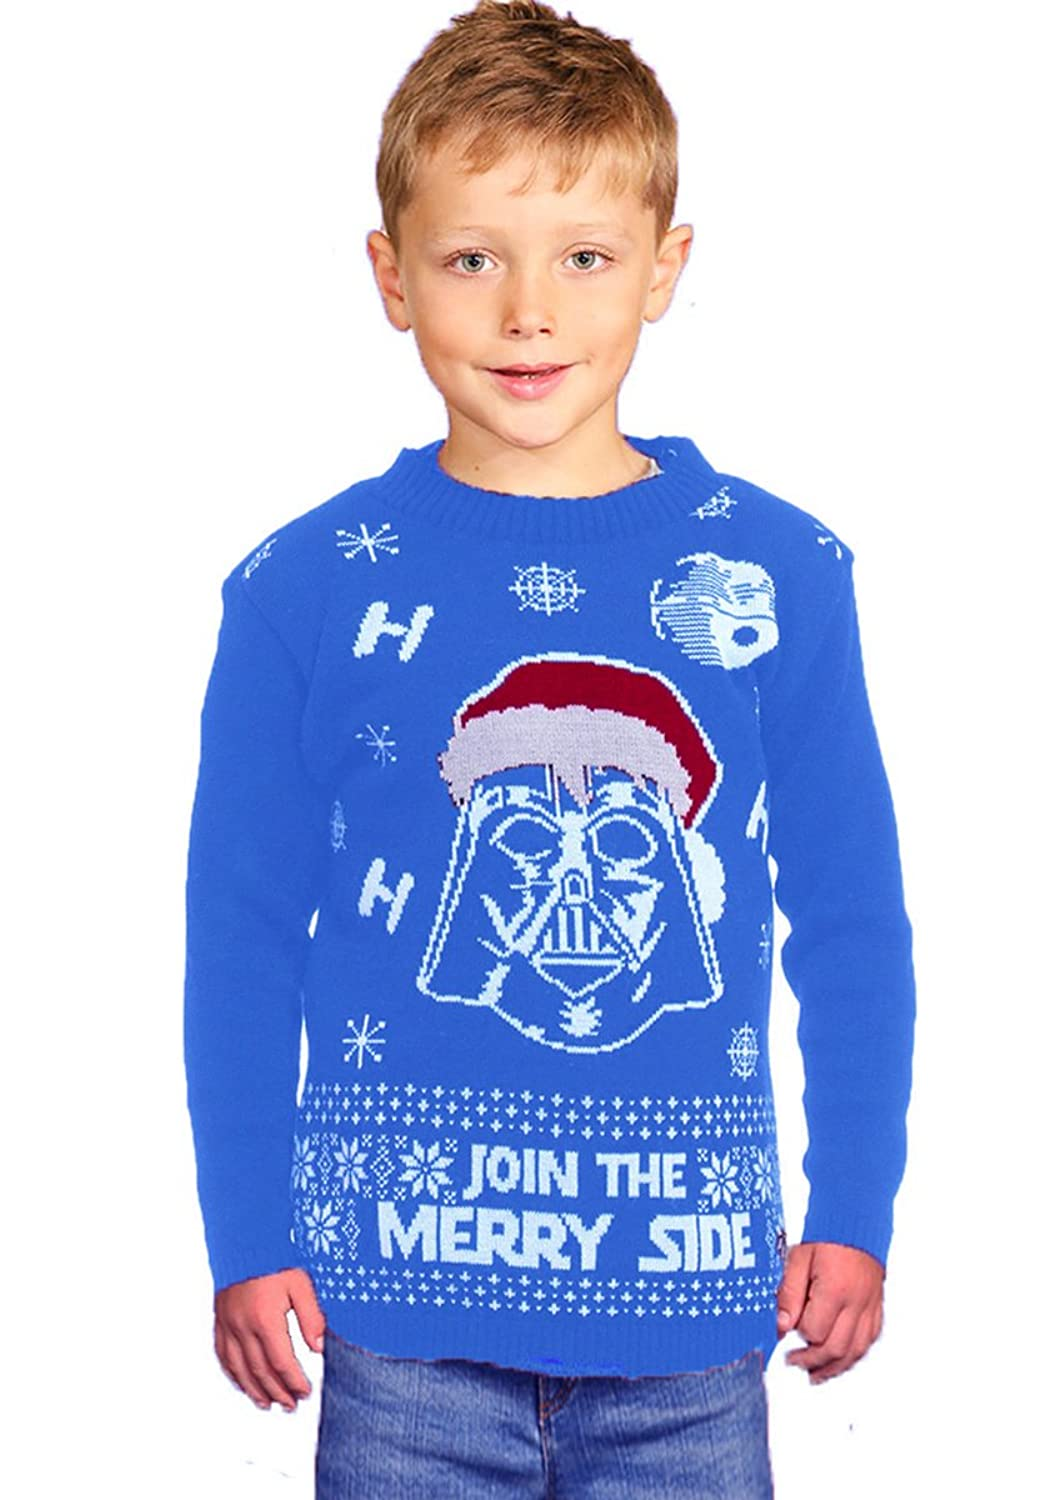 wholesale Star Wars Kids Christmas Jumper Knitted Sweater-Children Pullover-Unisex Jumper hot sale